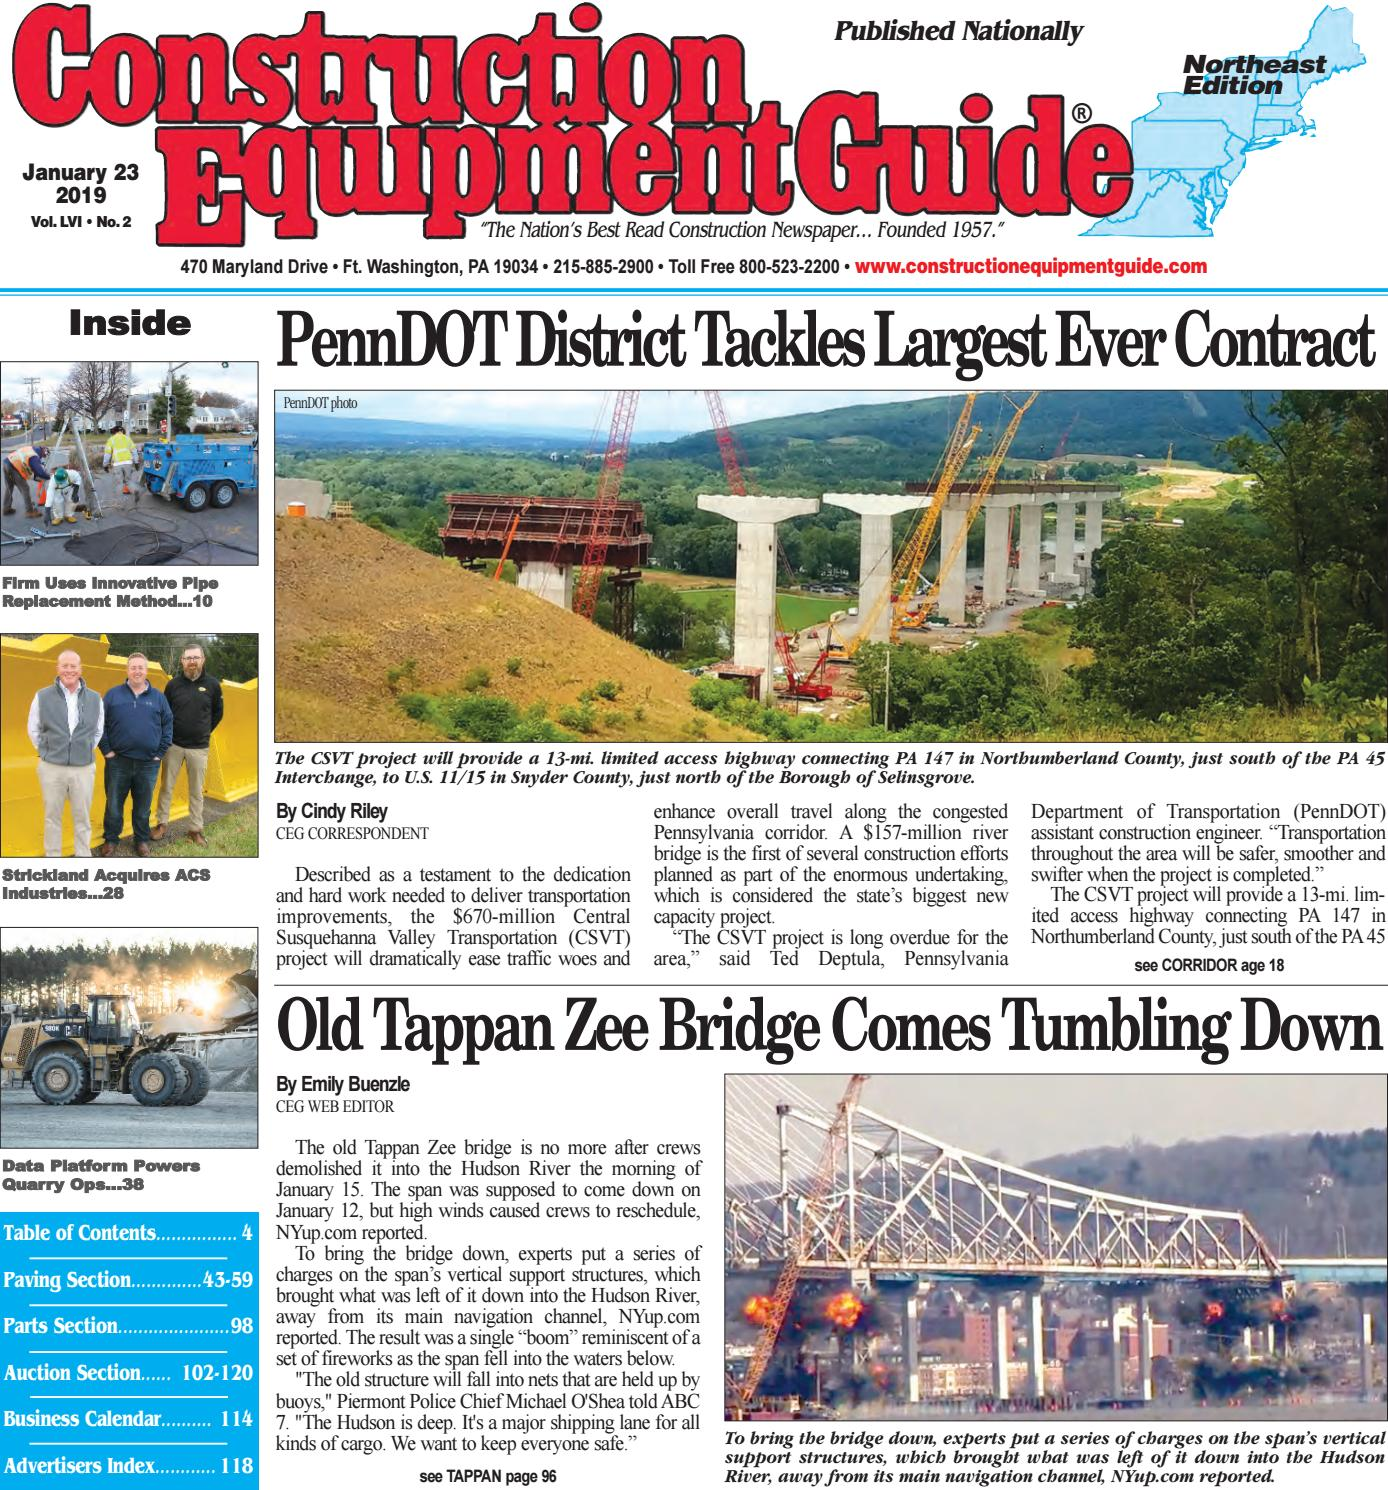 Northeast 2 January 23, 2019 by Construction Equipment Guide